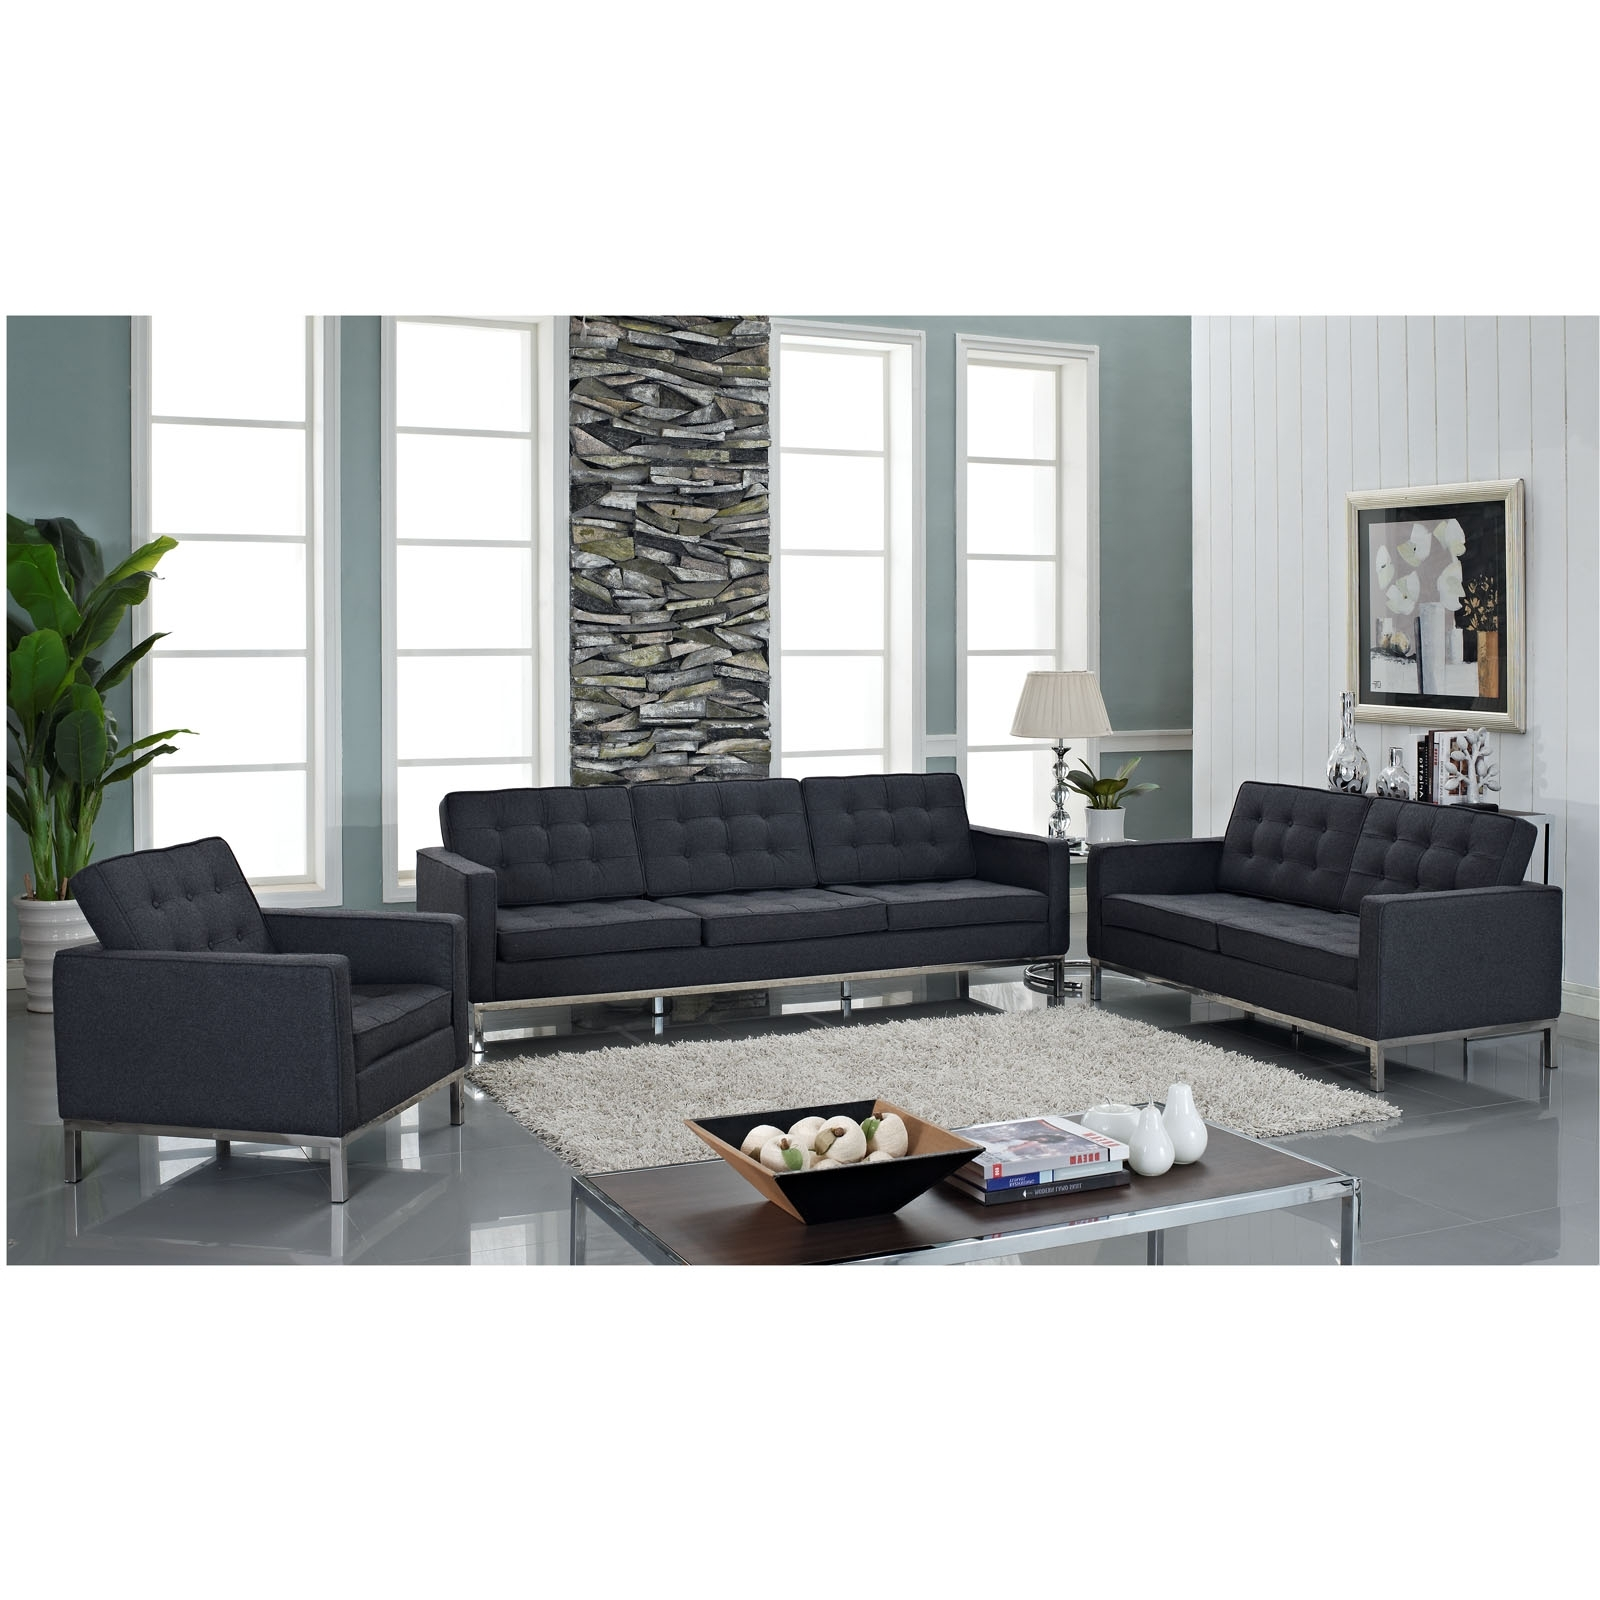 Florence Knoll Style Sofa Couch – Wool In Most Popular Florence Knoll Living Room Sofas (View 13 of 20)